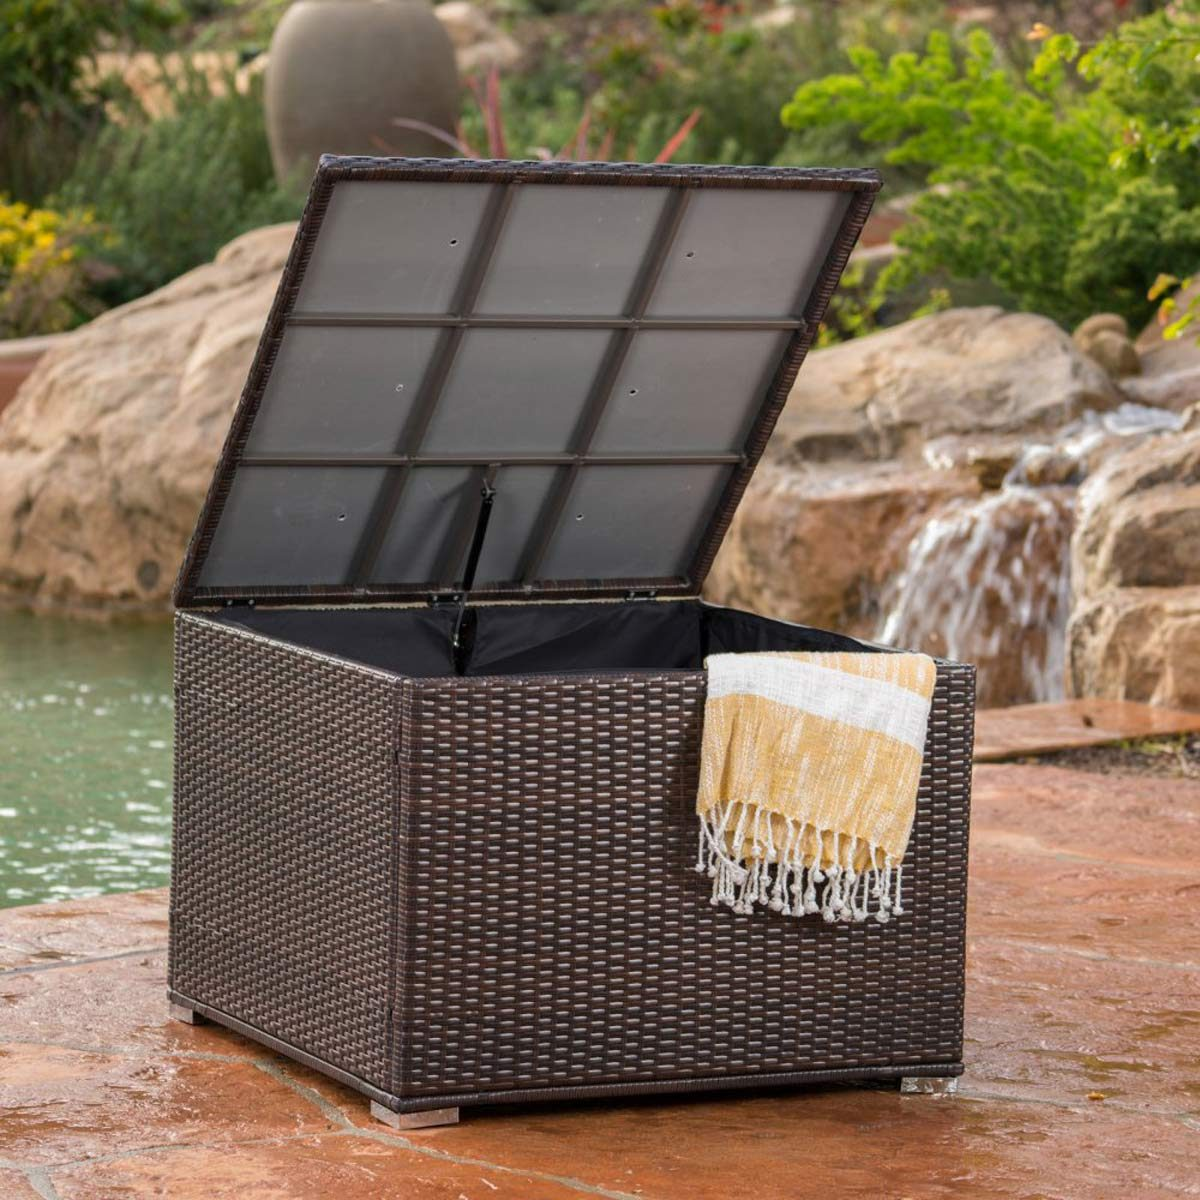 storage patio ideas for small spaces